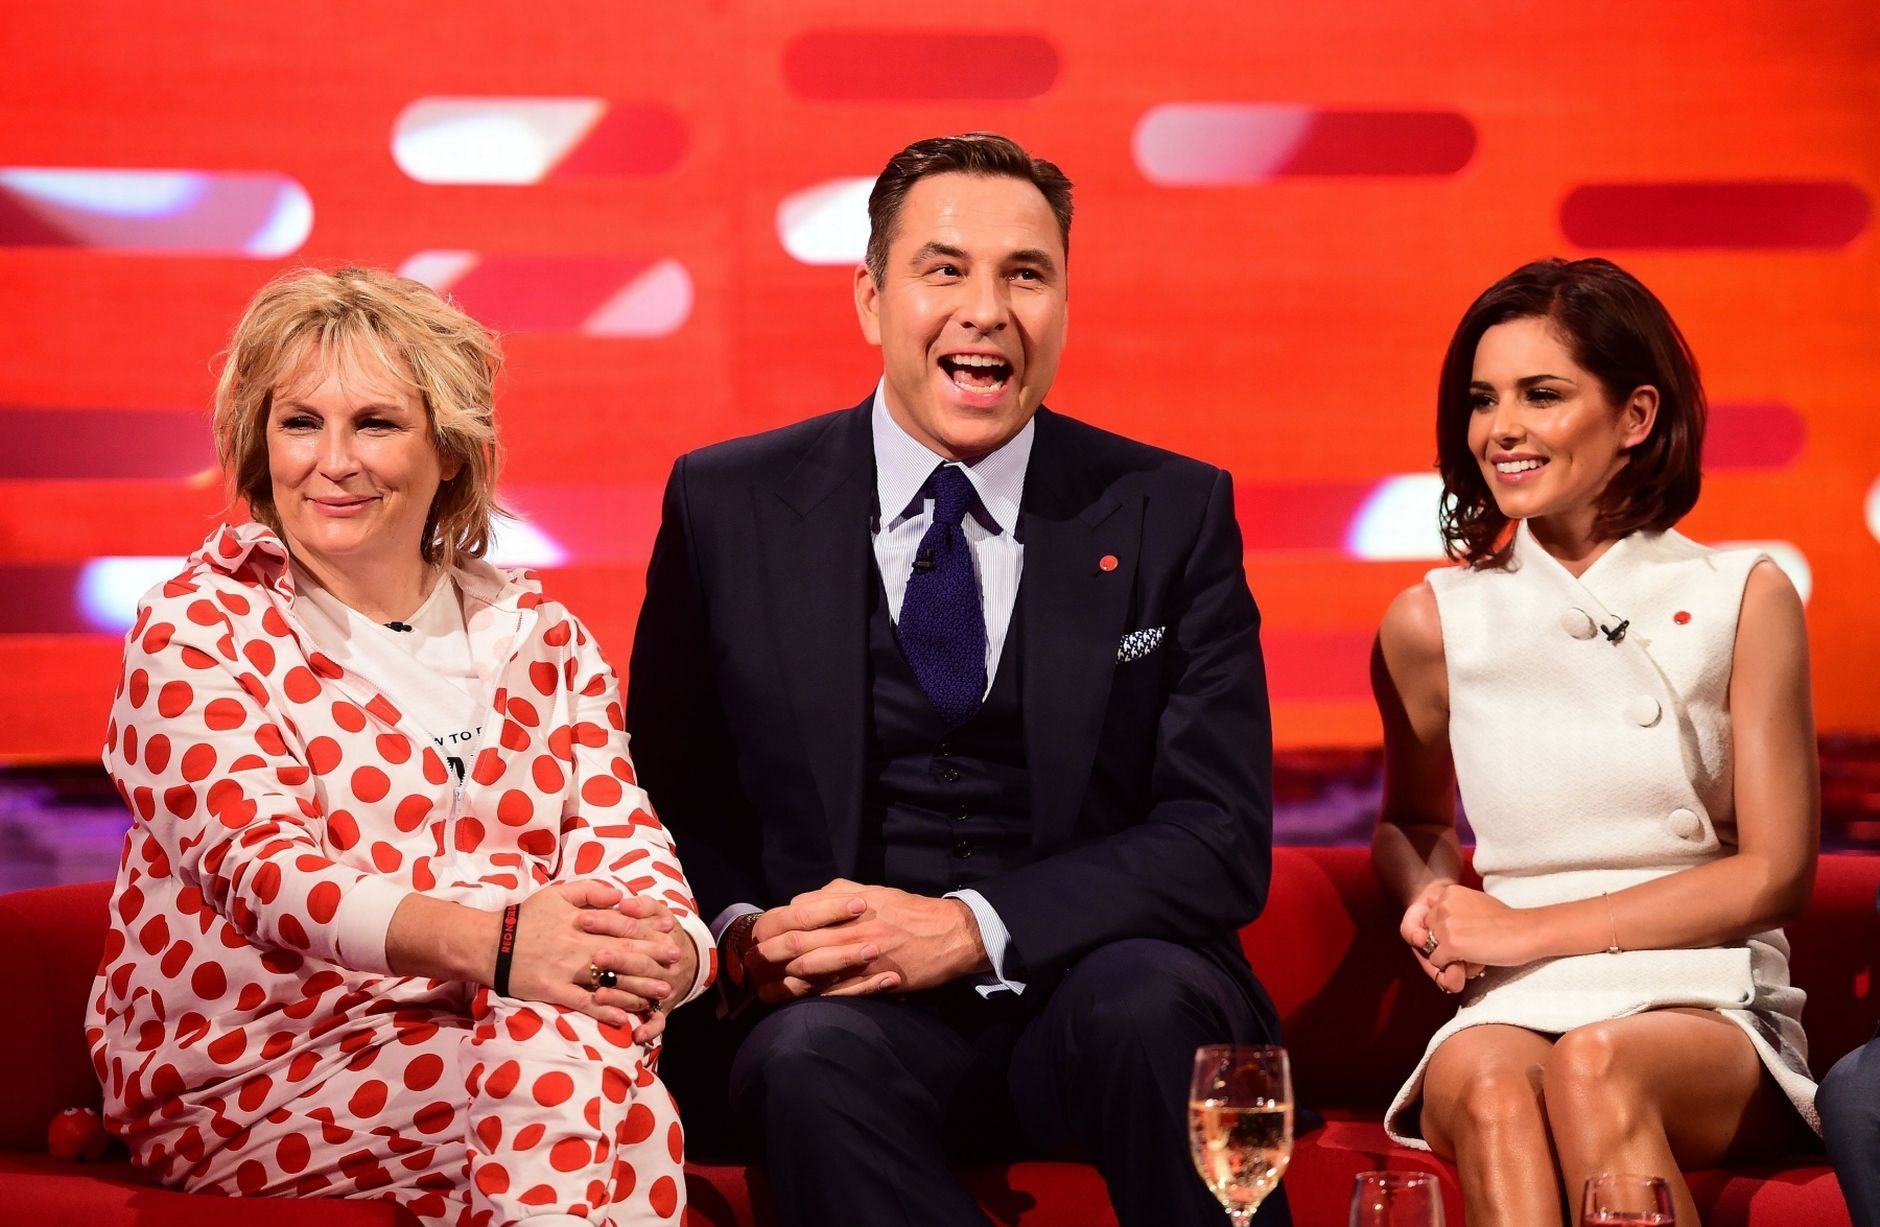 Cleaning ladies mrs overall on the graham norton show this week and - Cheryl Cole On Graham Norton Show Comic Relief Google Search